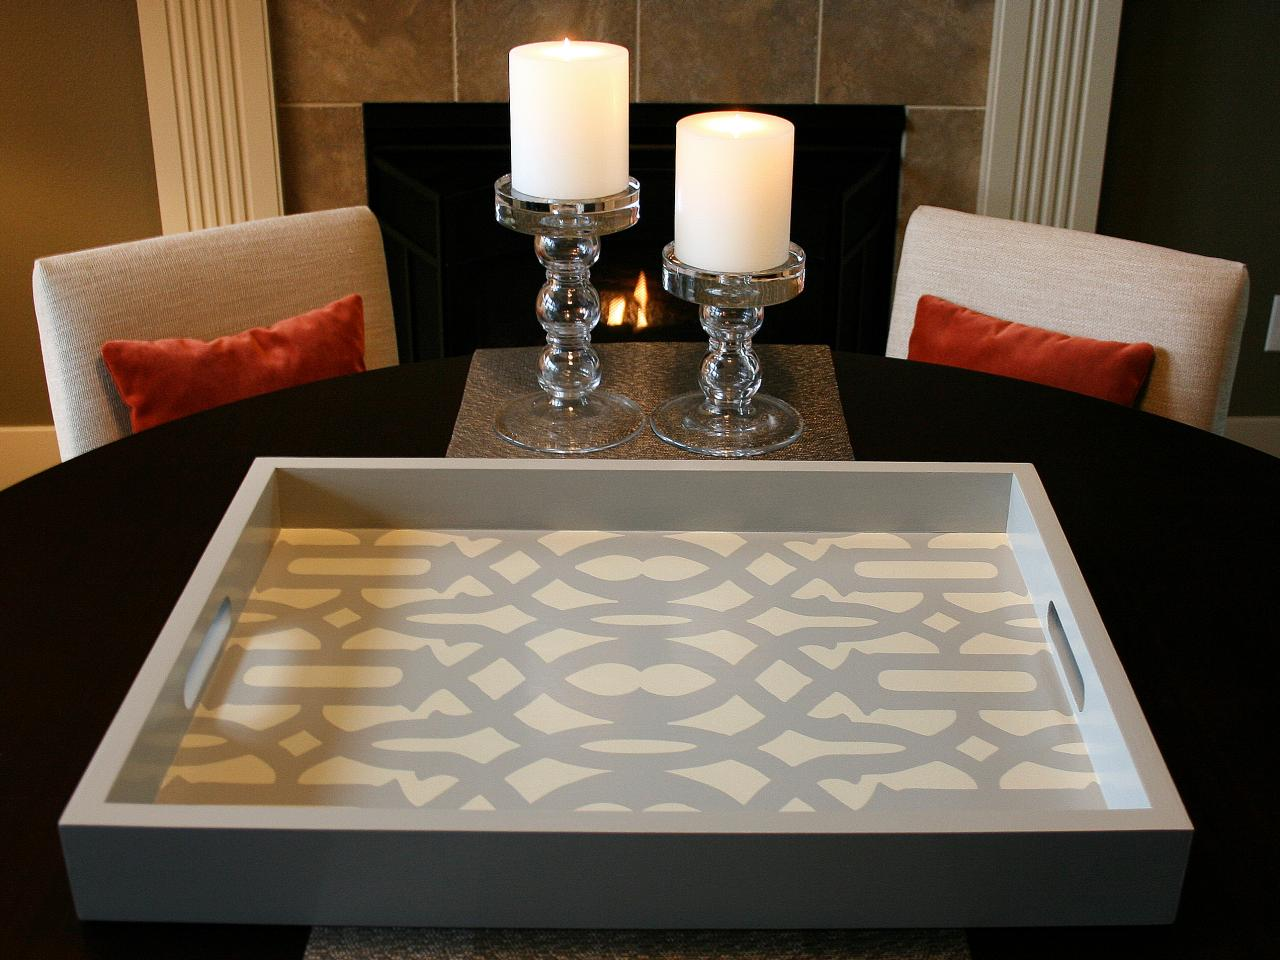 Stenciled Tray With Candles